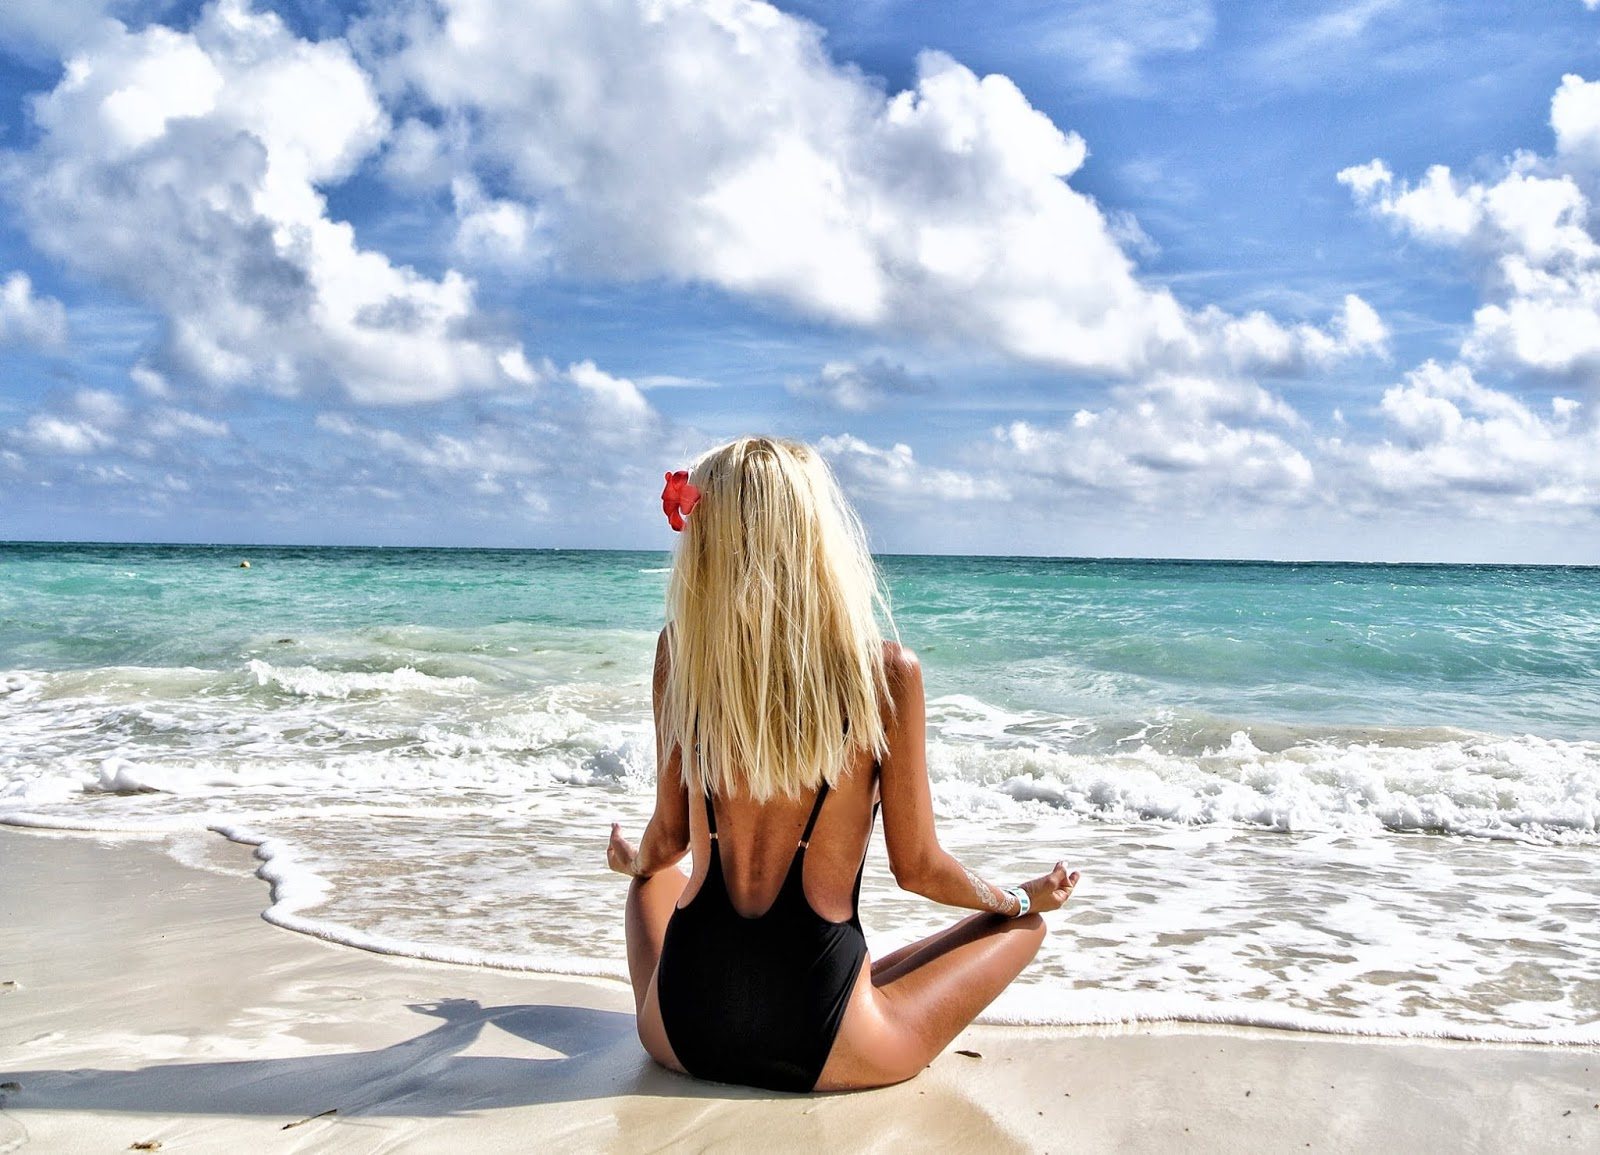 slim woman at the beach sitting in the ocean